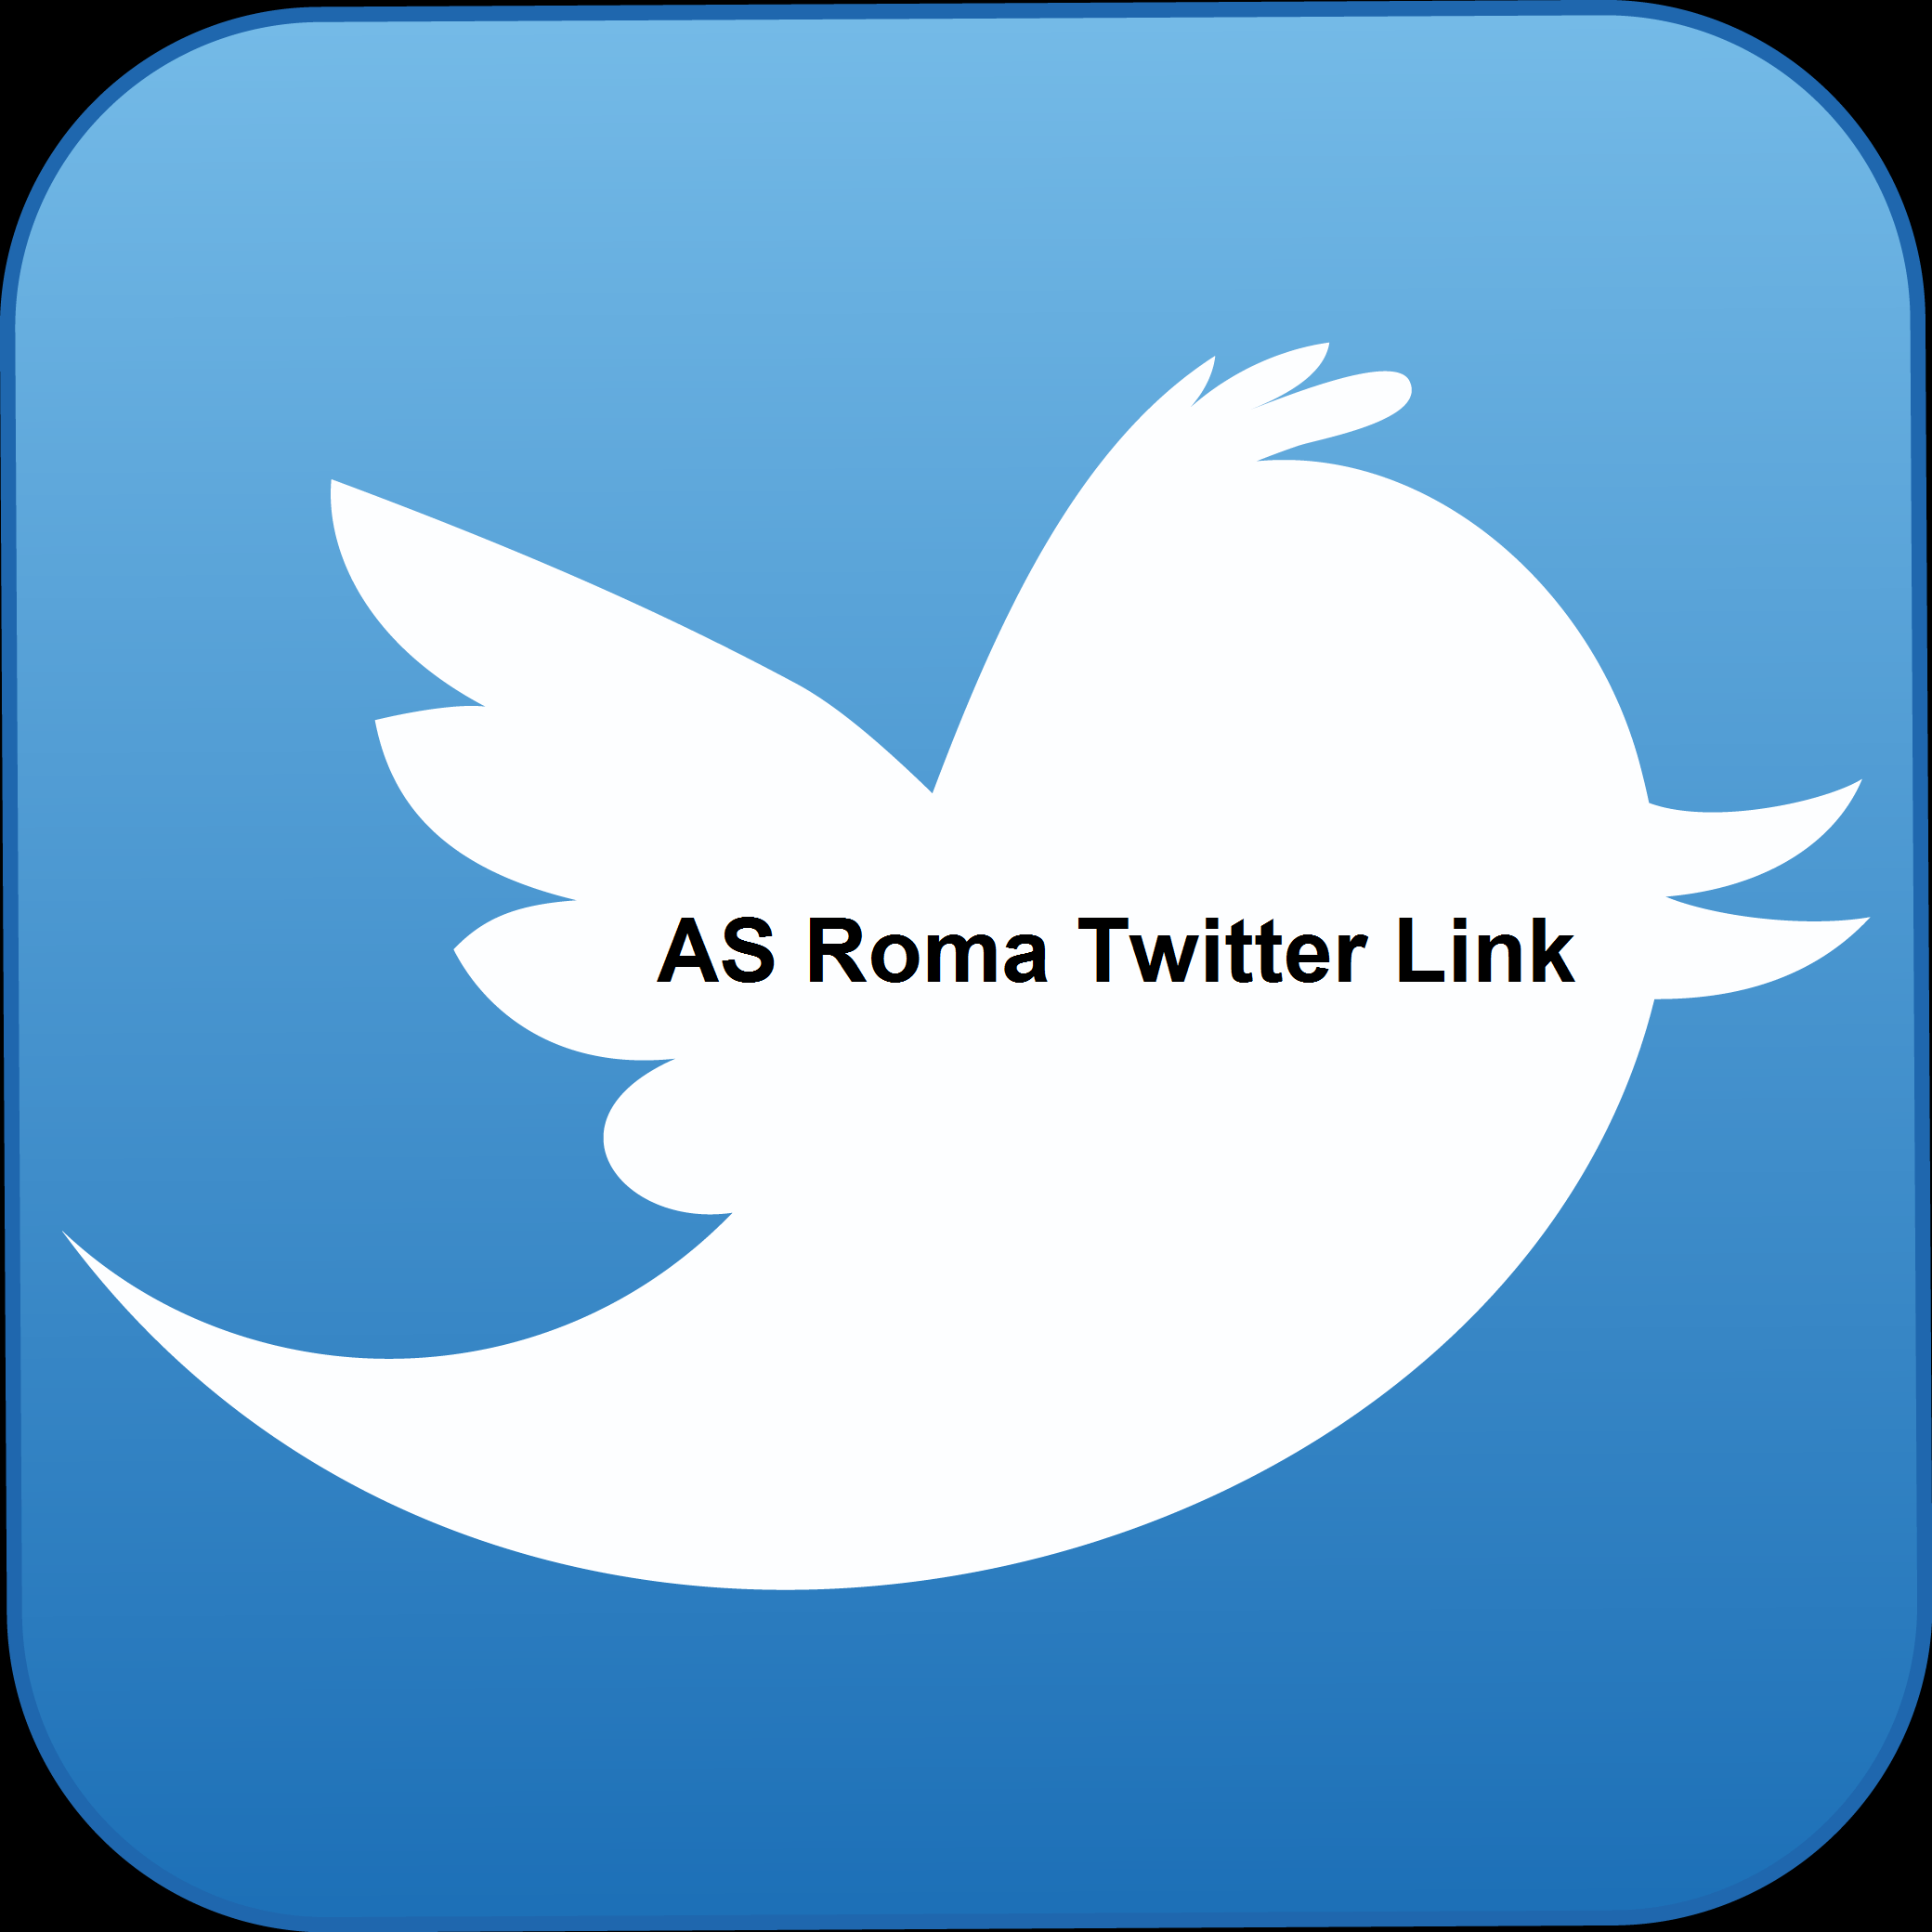 AS Roma Twitter Account